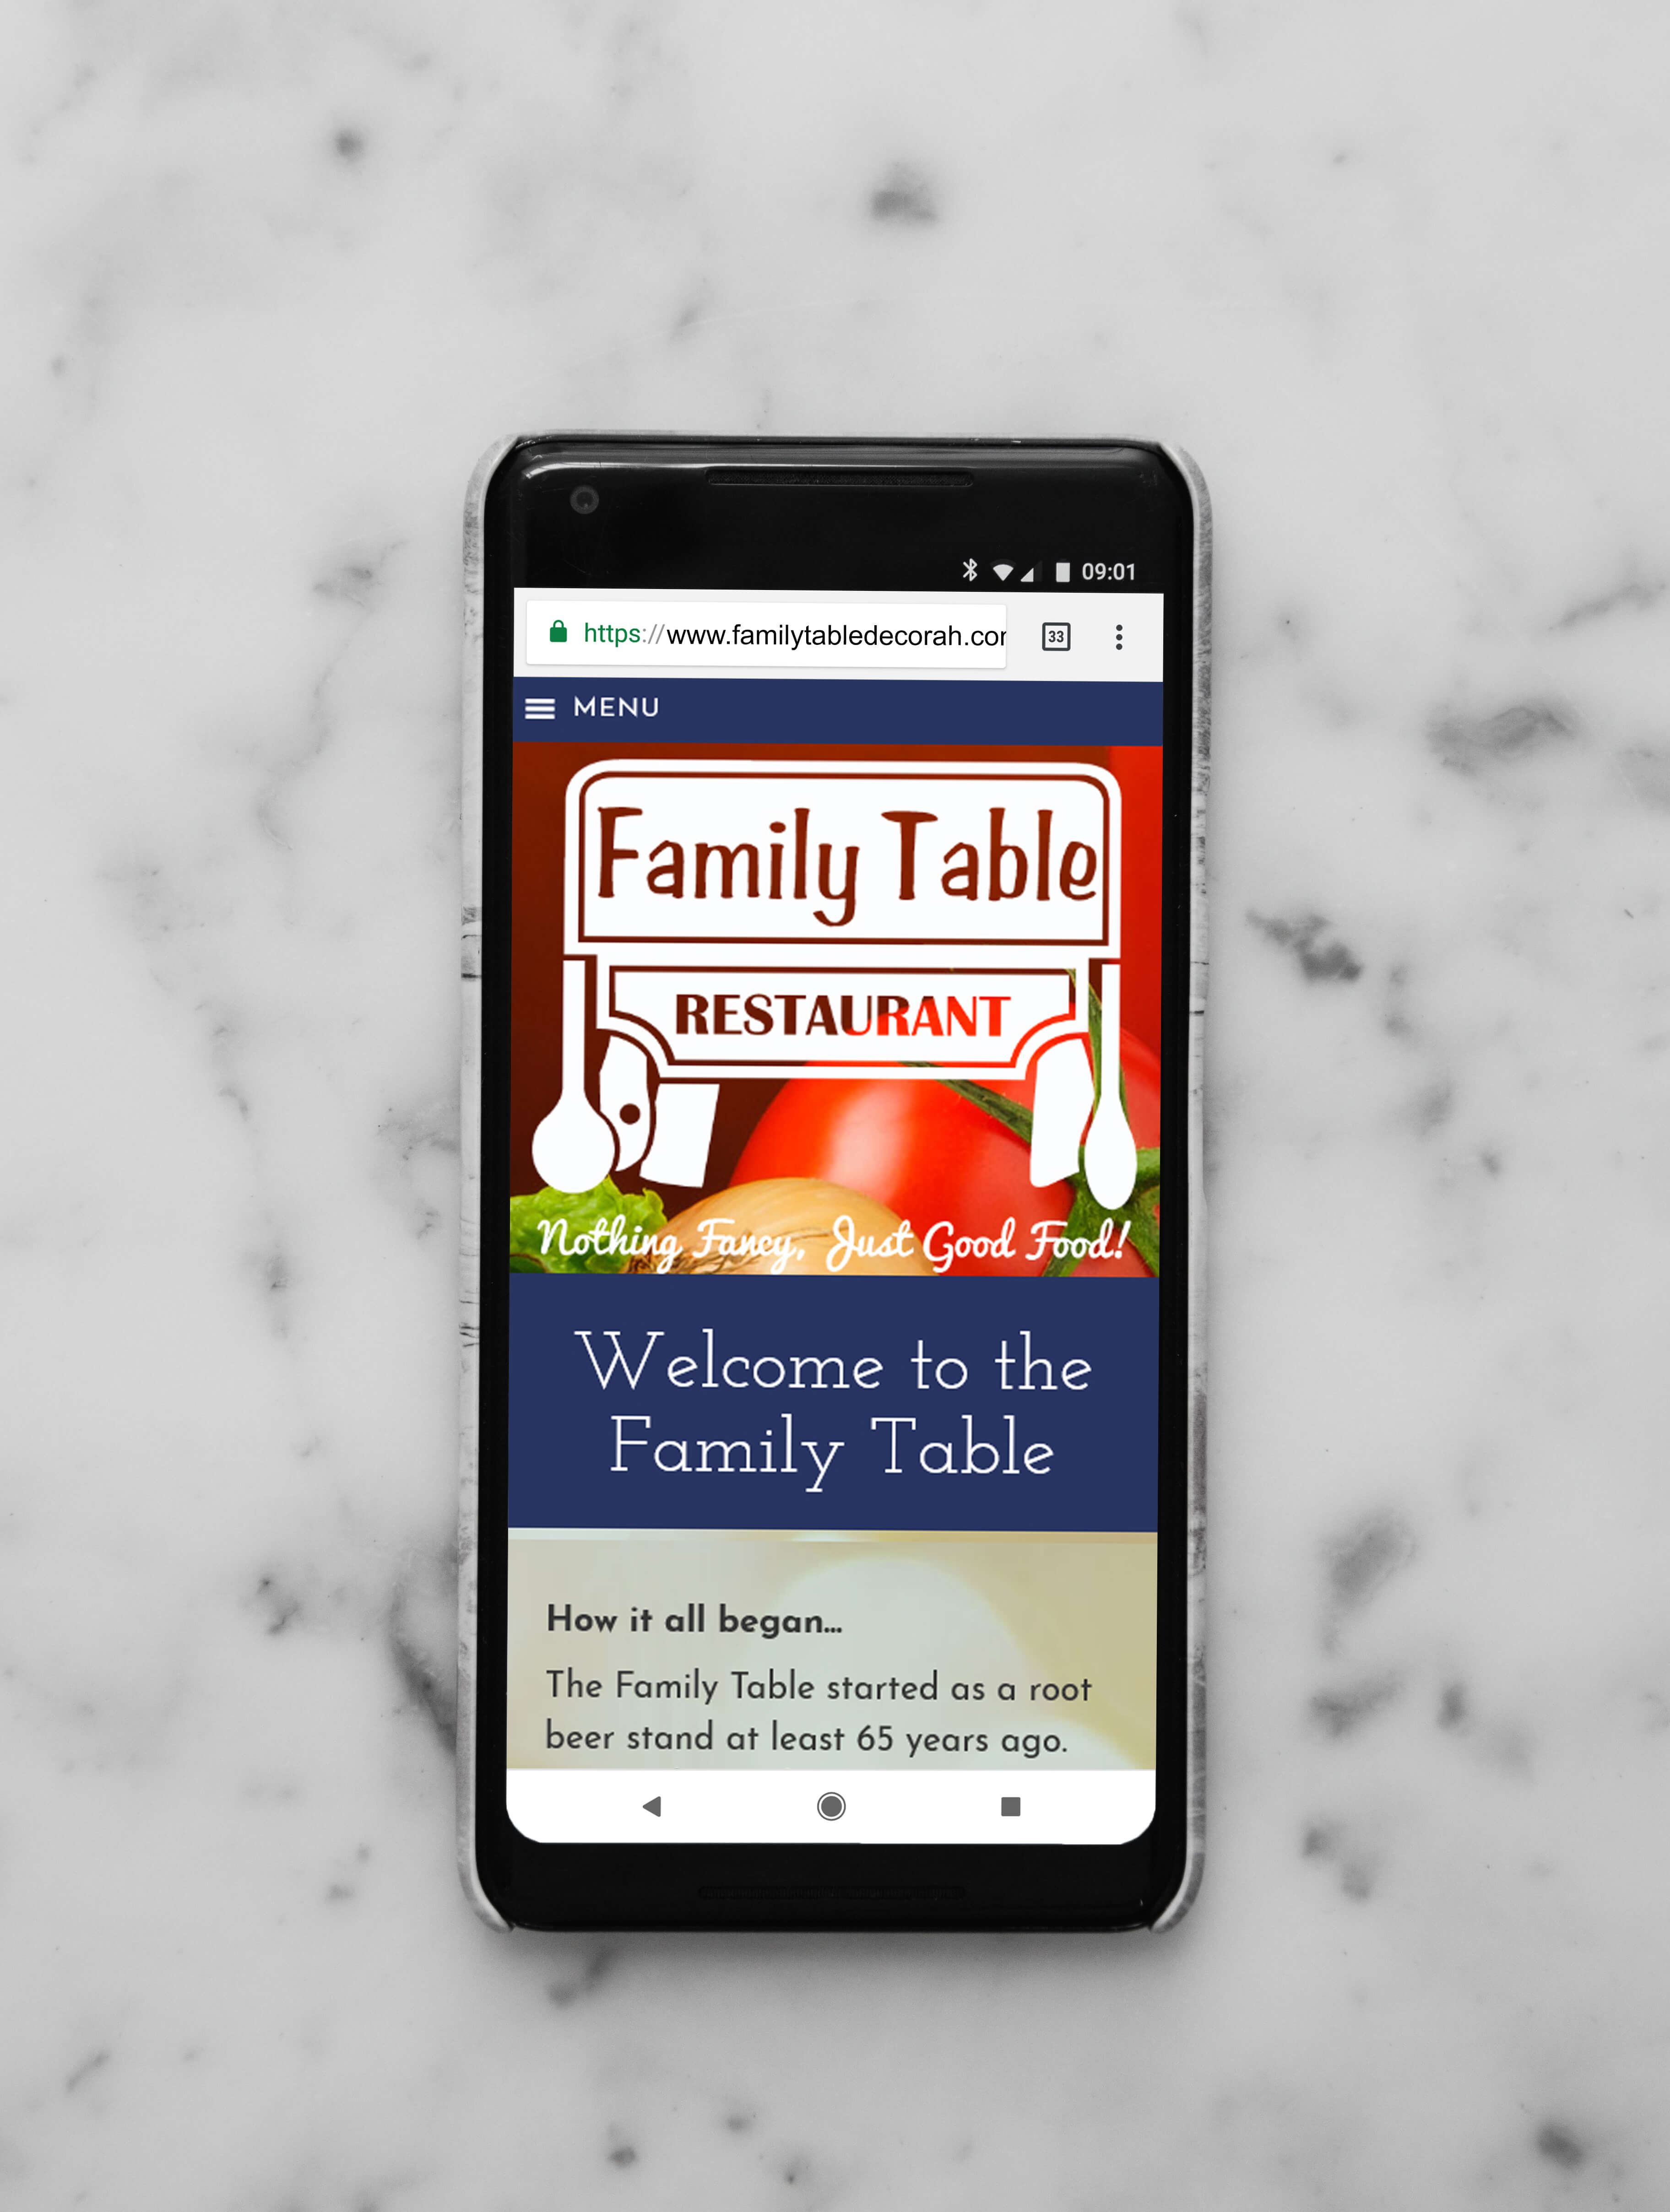 Family Table Restaurant Gallery Photo